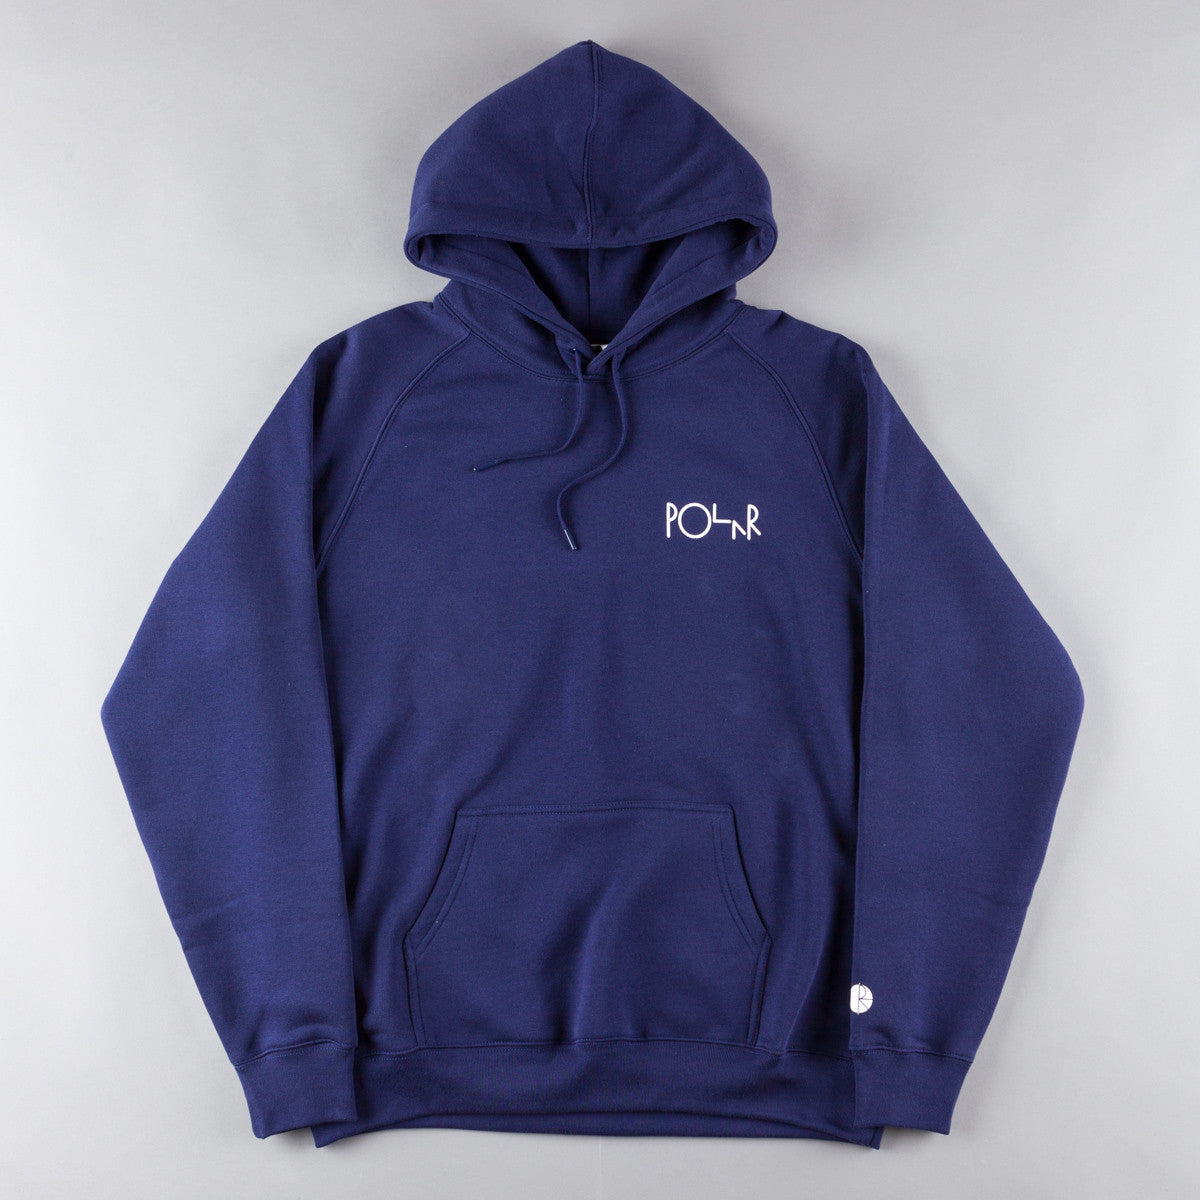 Polar Default Hooded Sweatshirt